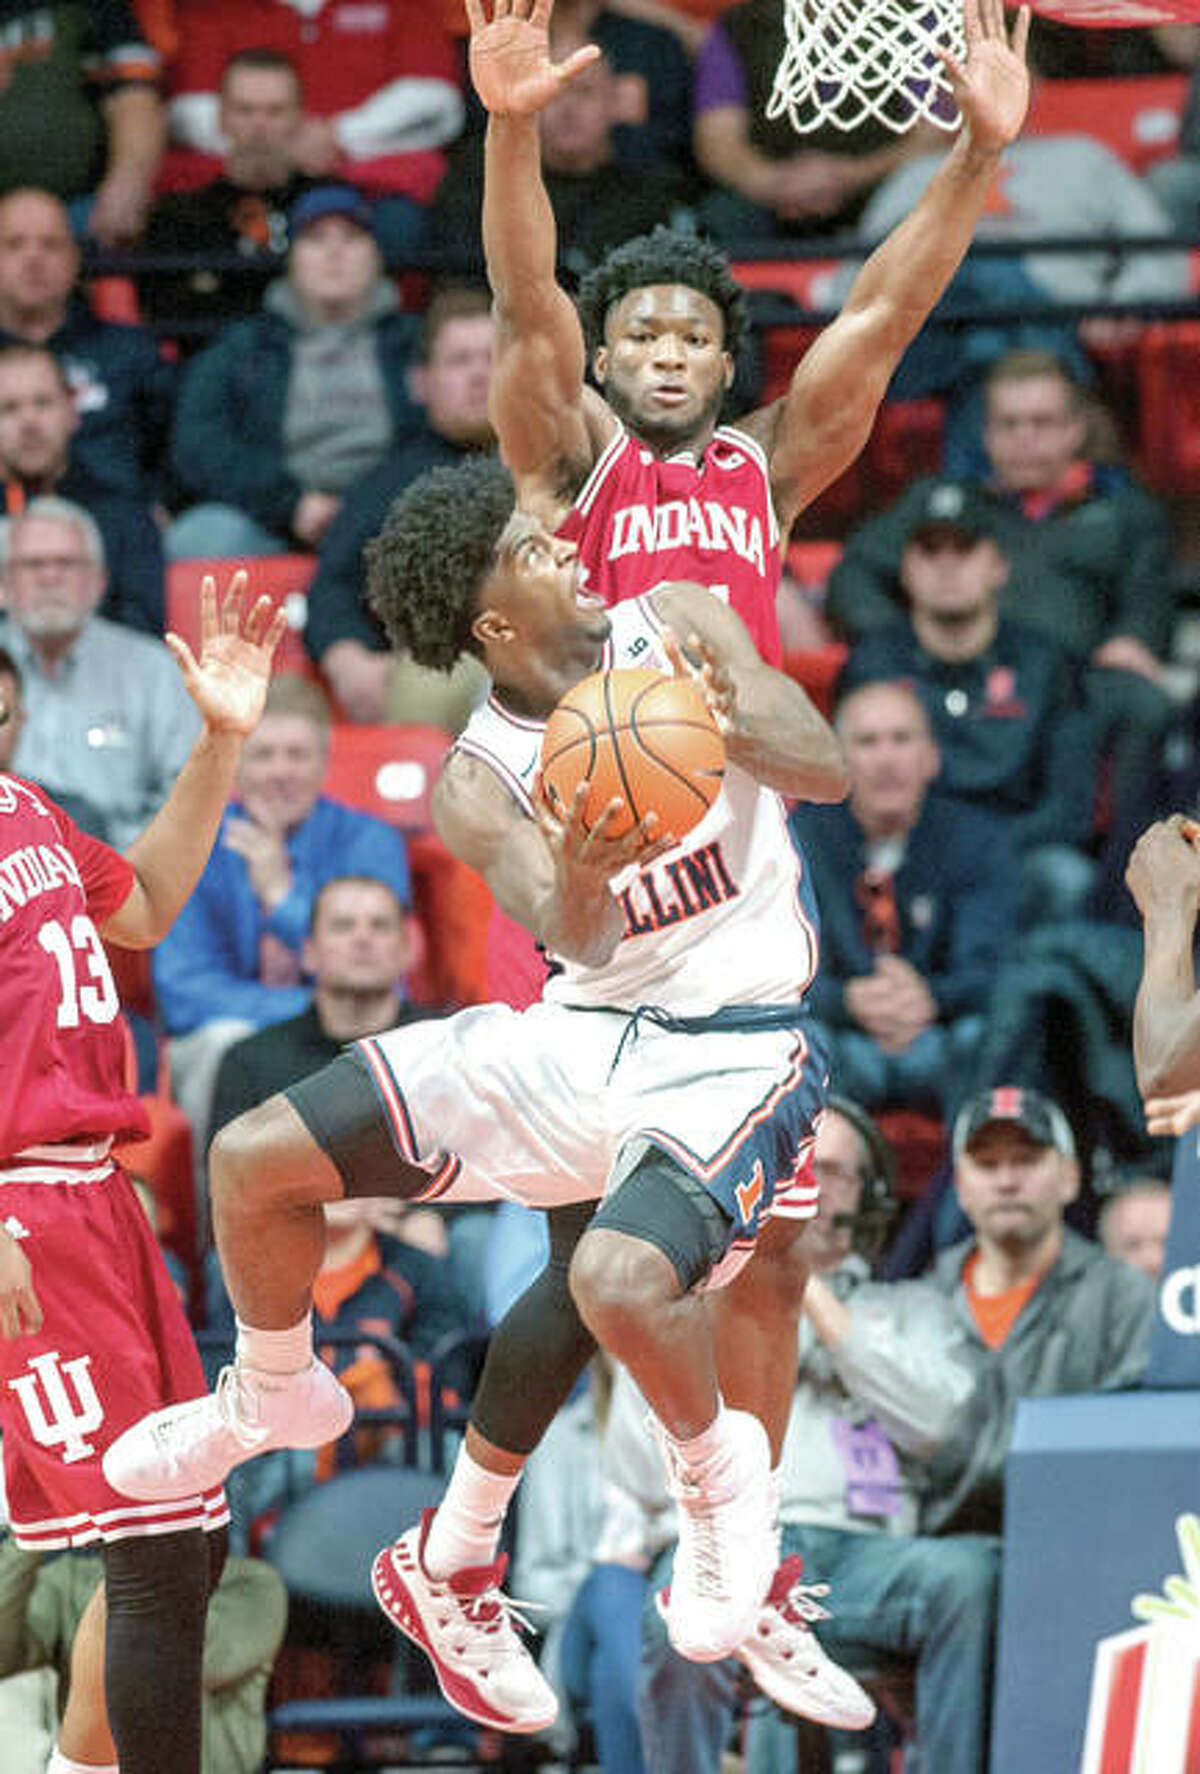 Illinois forward Kipper Nichols looks for a shot against Indiana forward Freddie McSwain Jr. Wednesday night's game in Champaign.